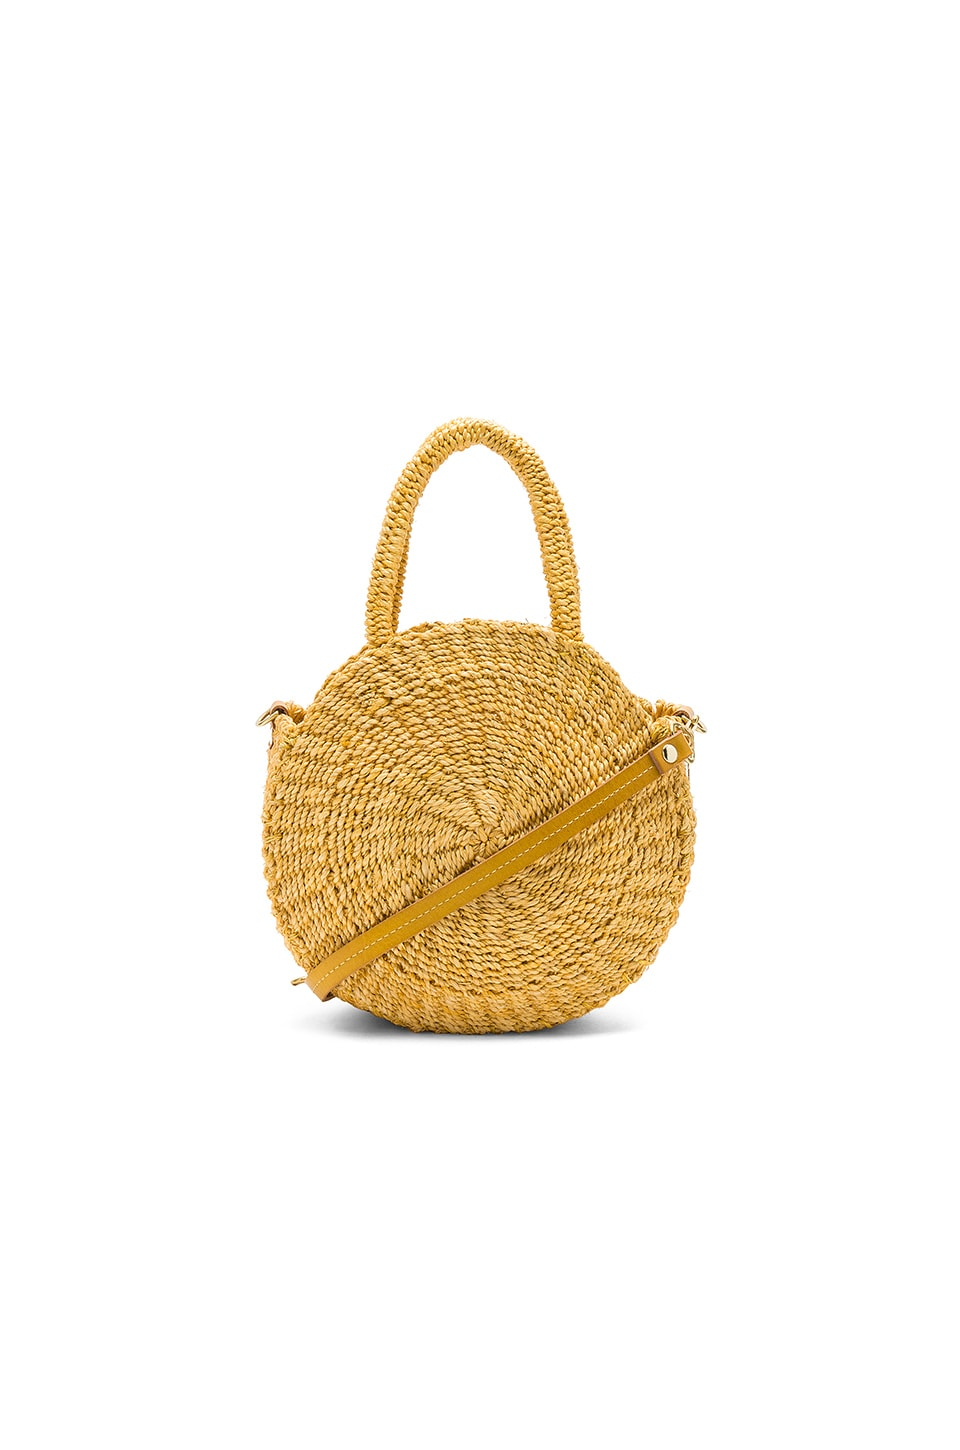 Clare V. Petite Alice Tote in Yellow Woven